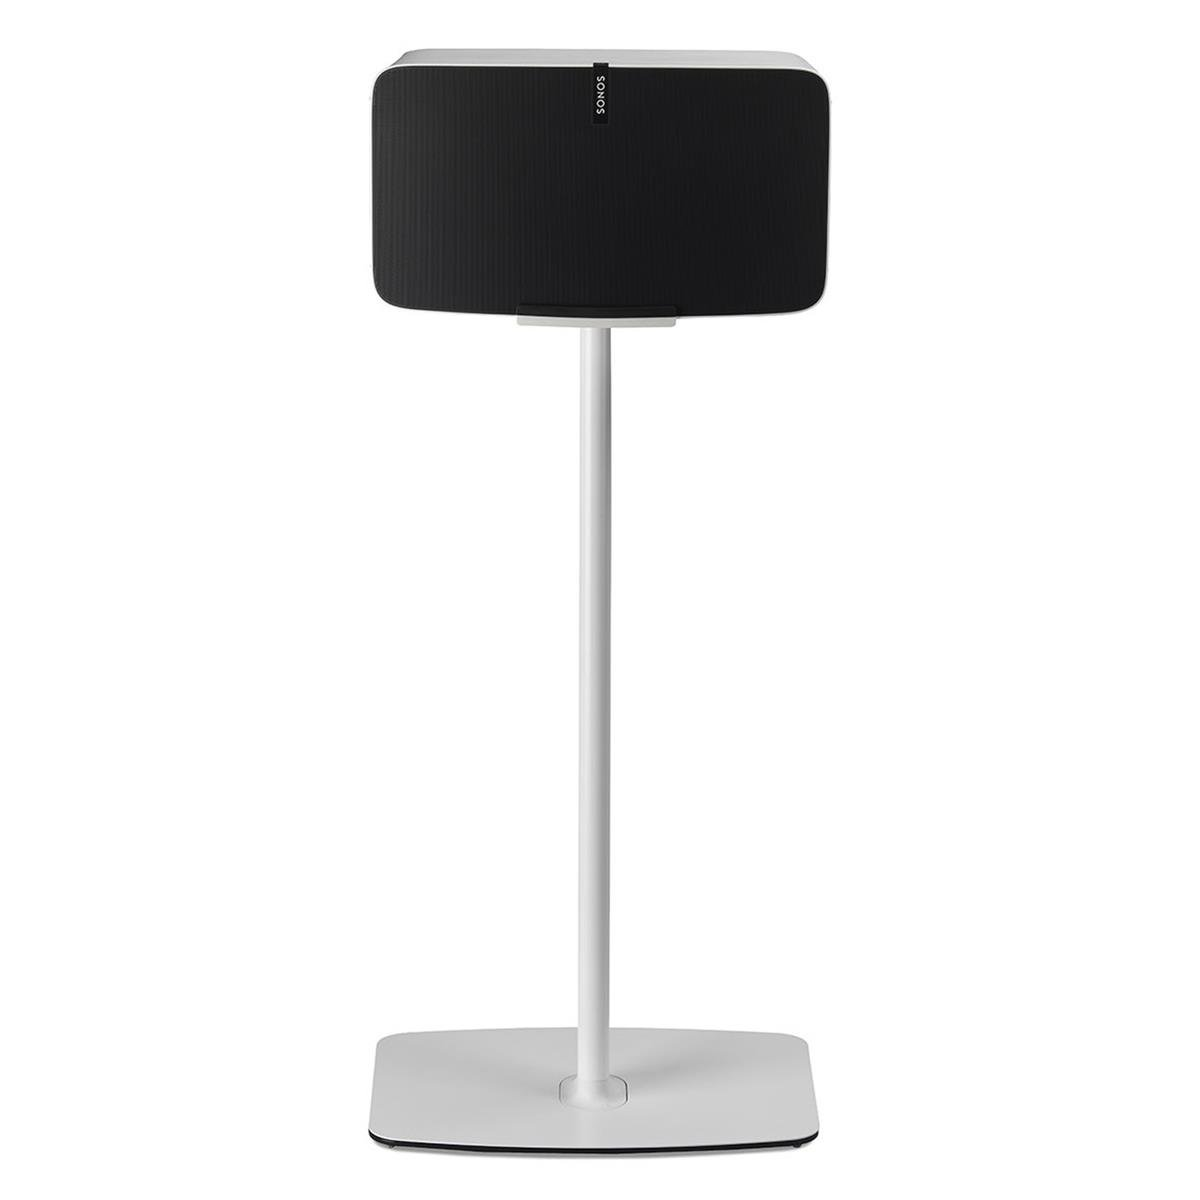 Flexson Floorstand for Sonos Play:5 Gen 2 in White (Horizontal, Single)